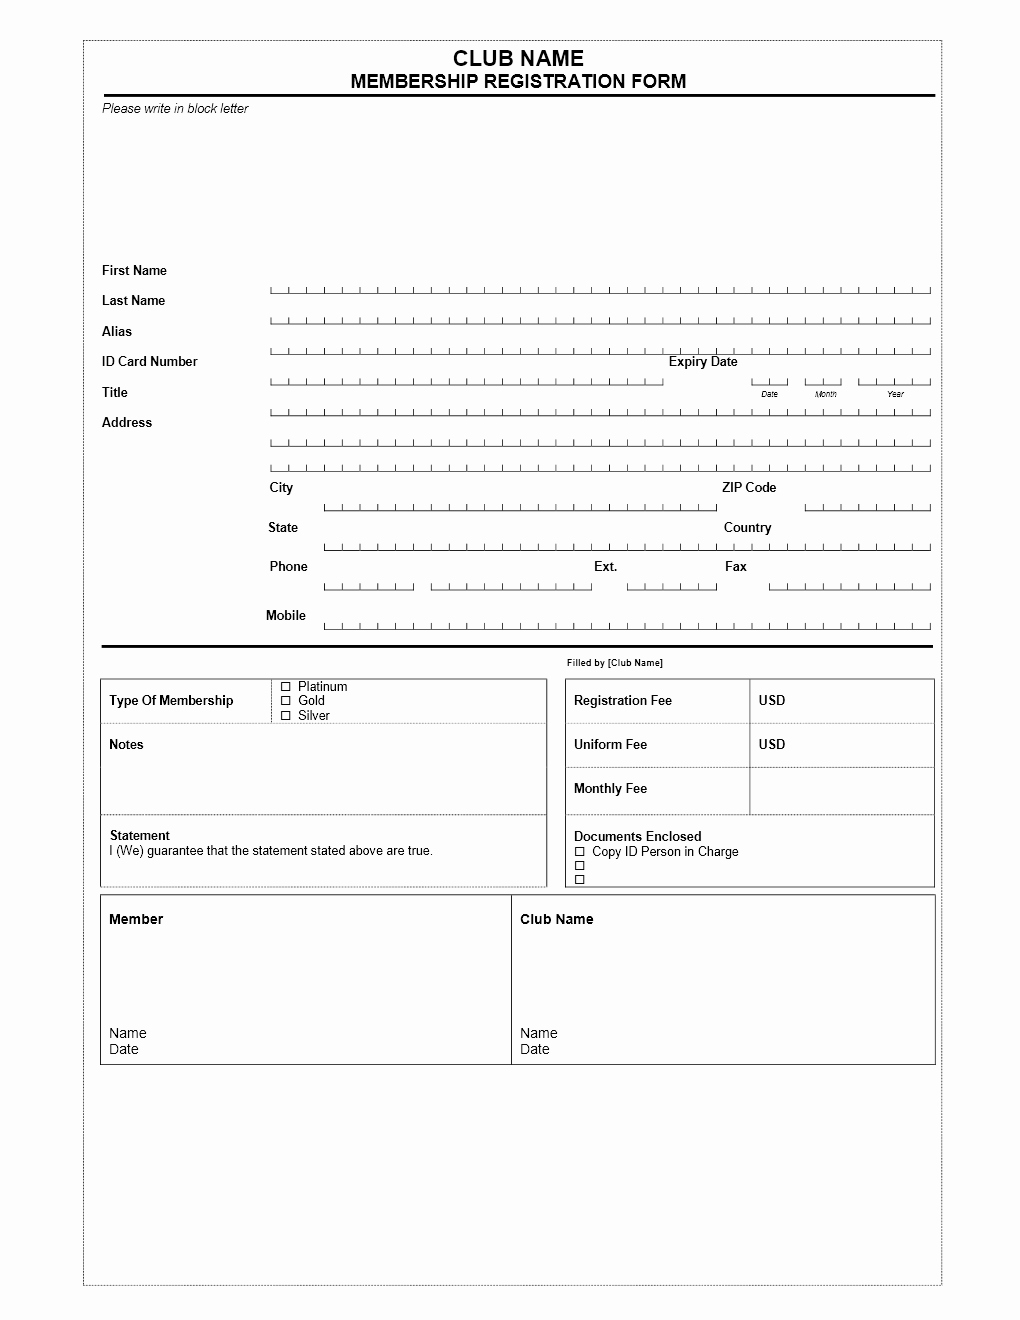 Html Registration form Template Beautiful Club Membership Application form